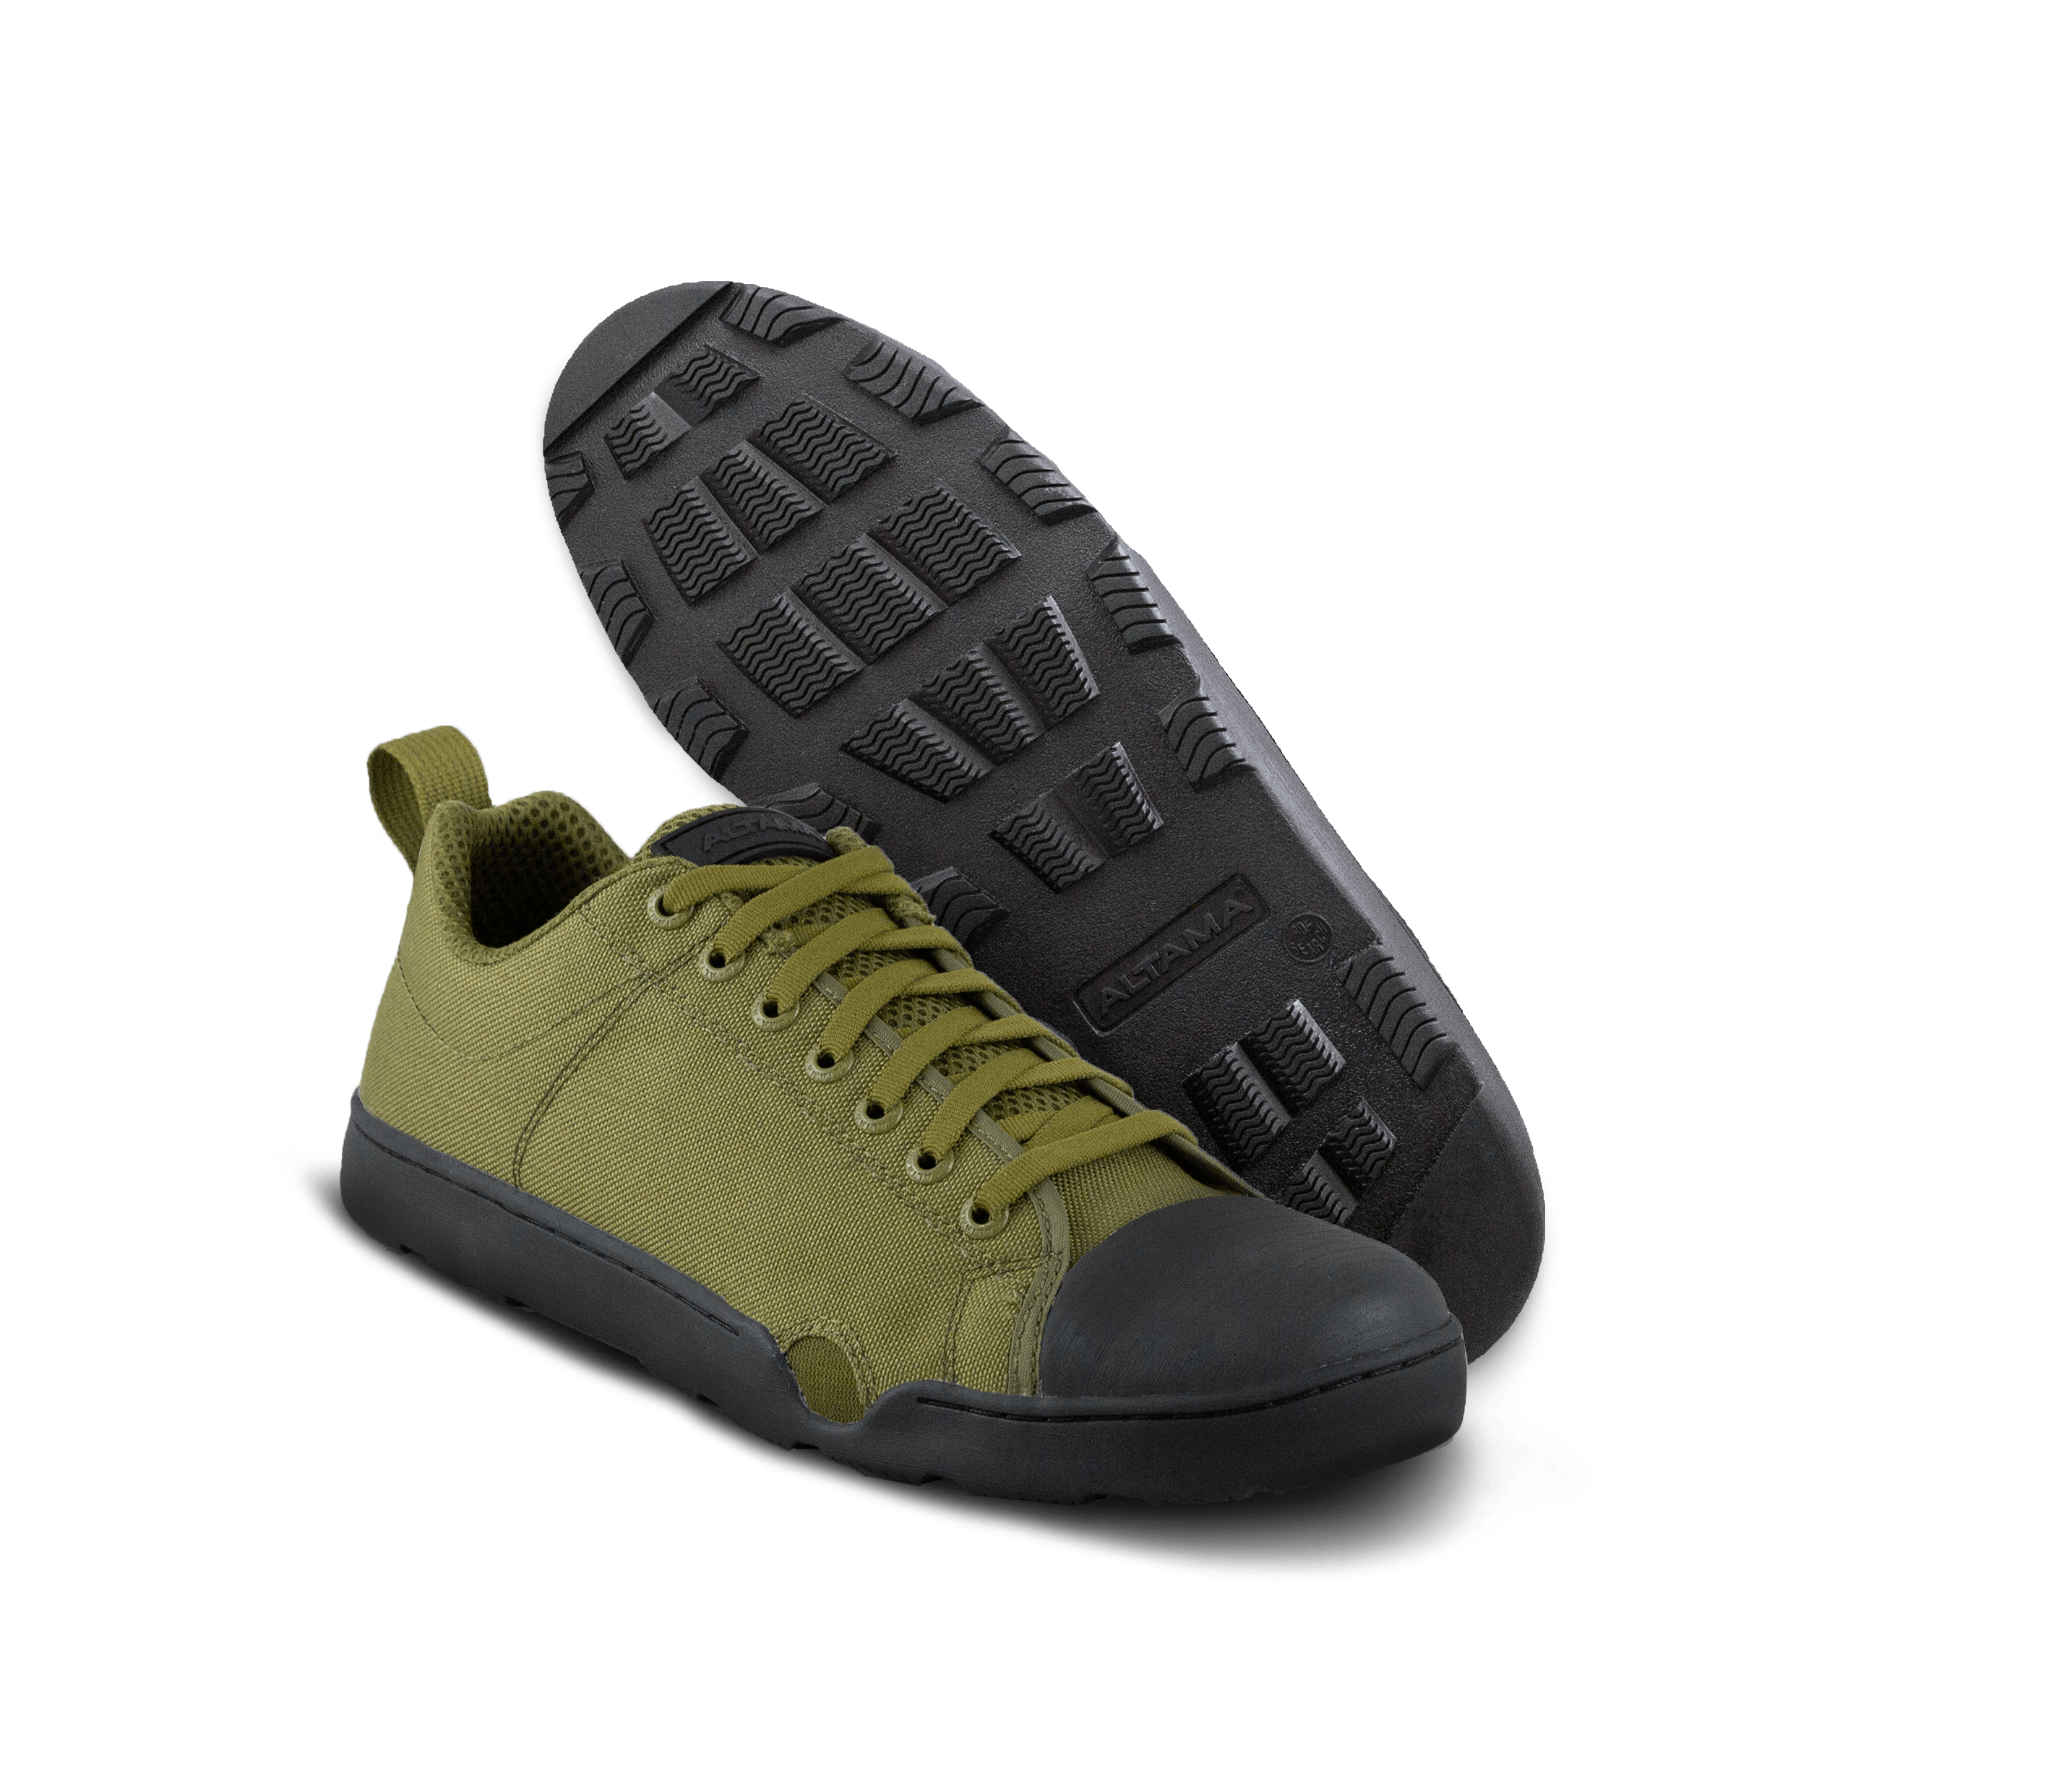 Тактичні кеди Altama Maritime Assault Low Olive Drab (335006) Фото